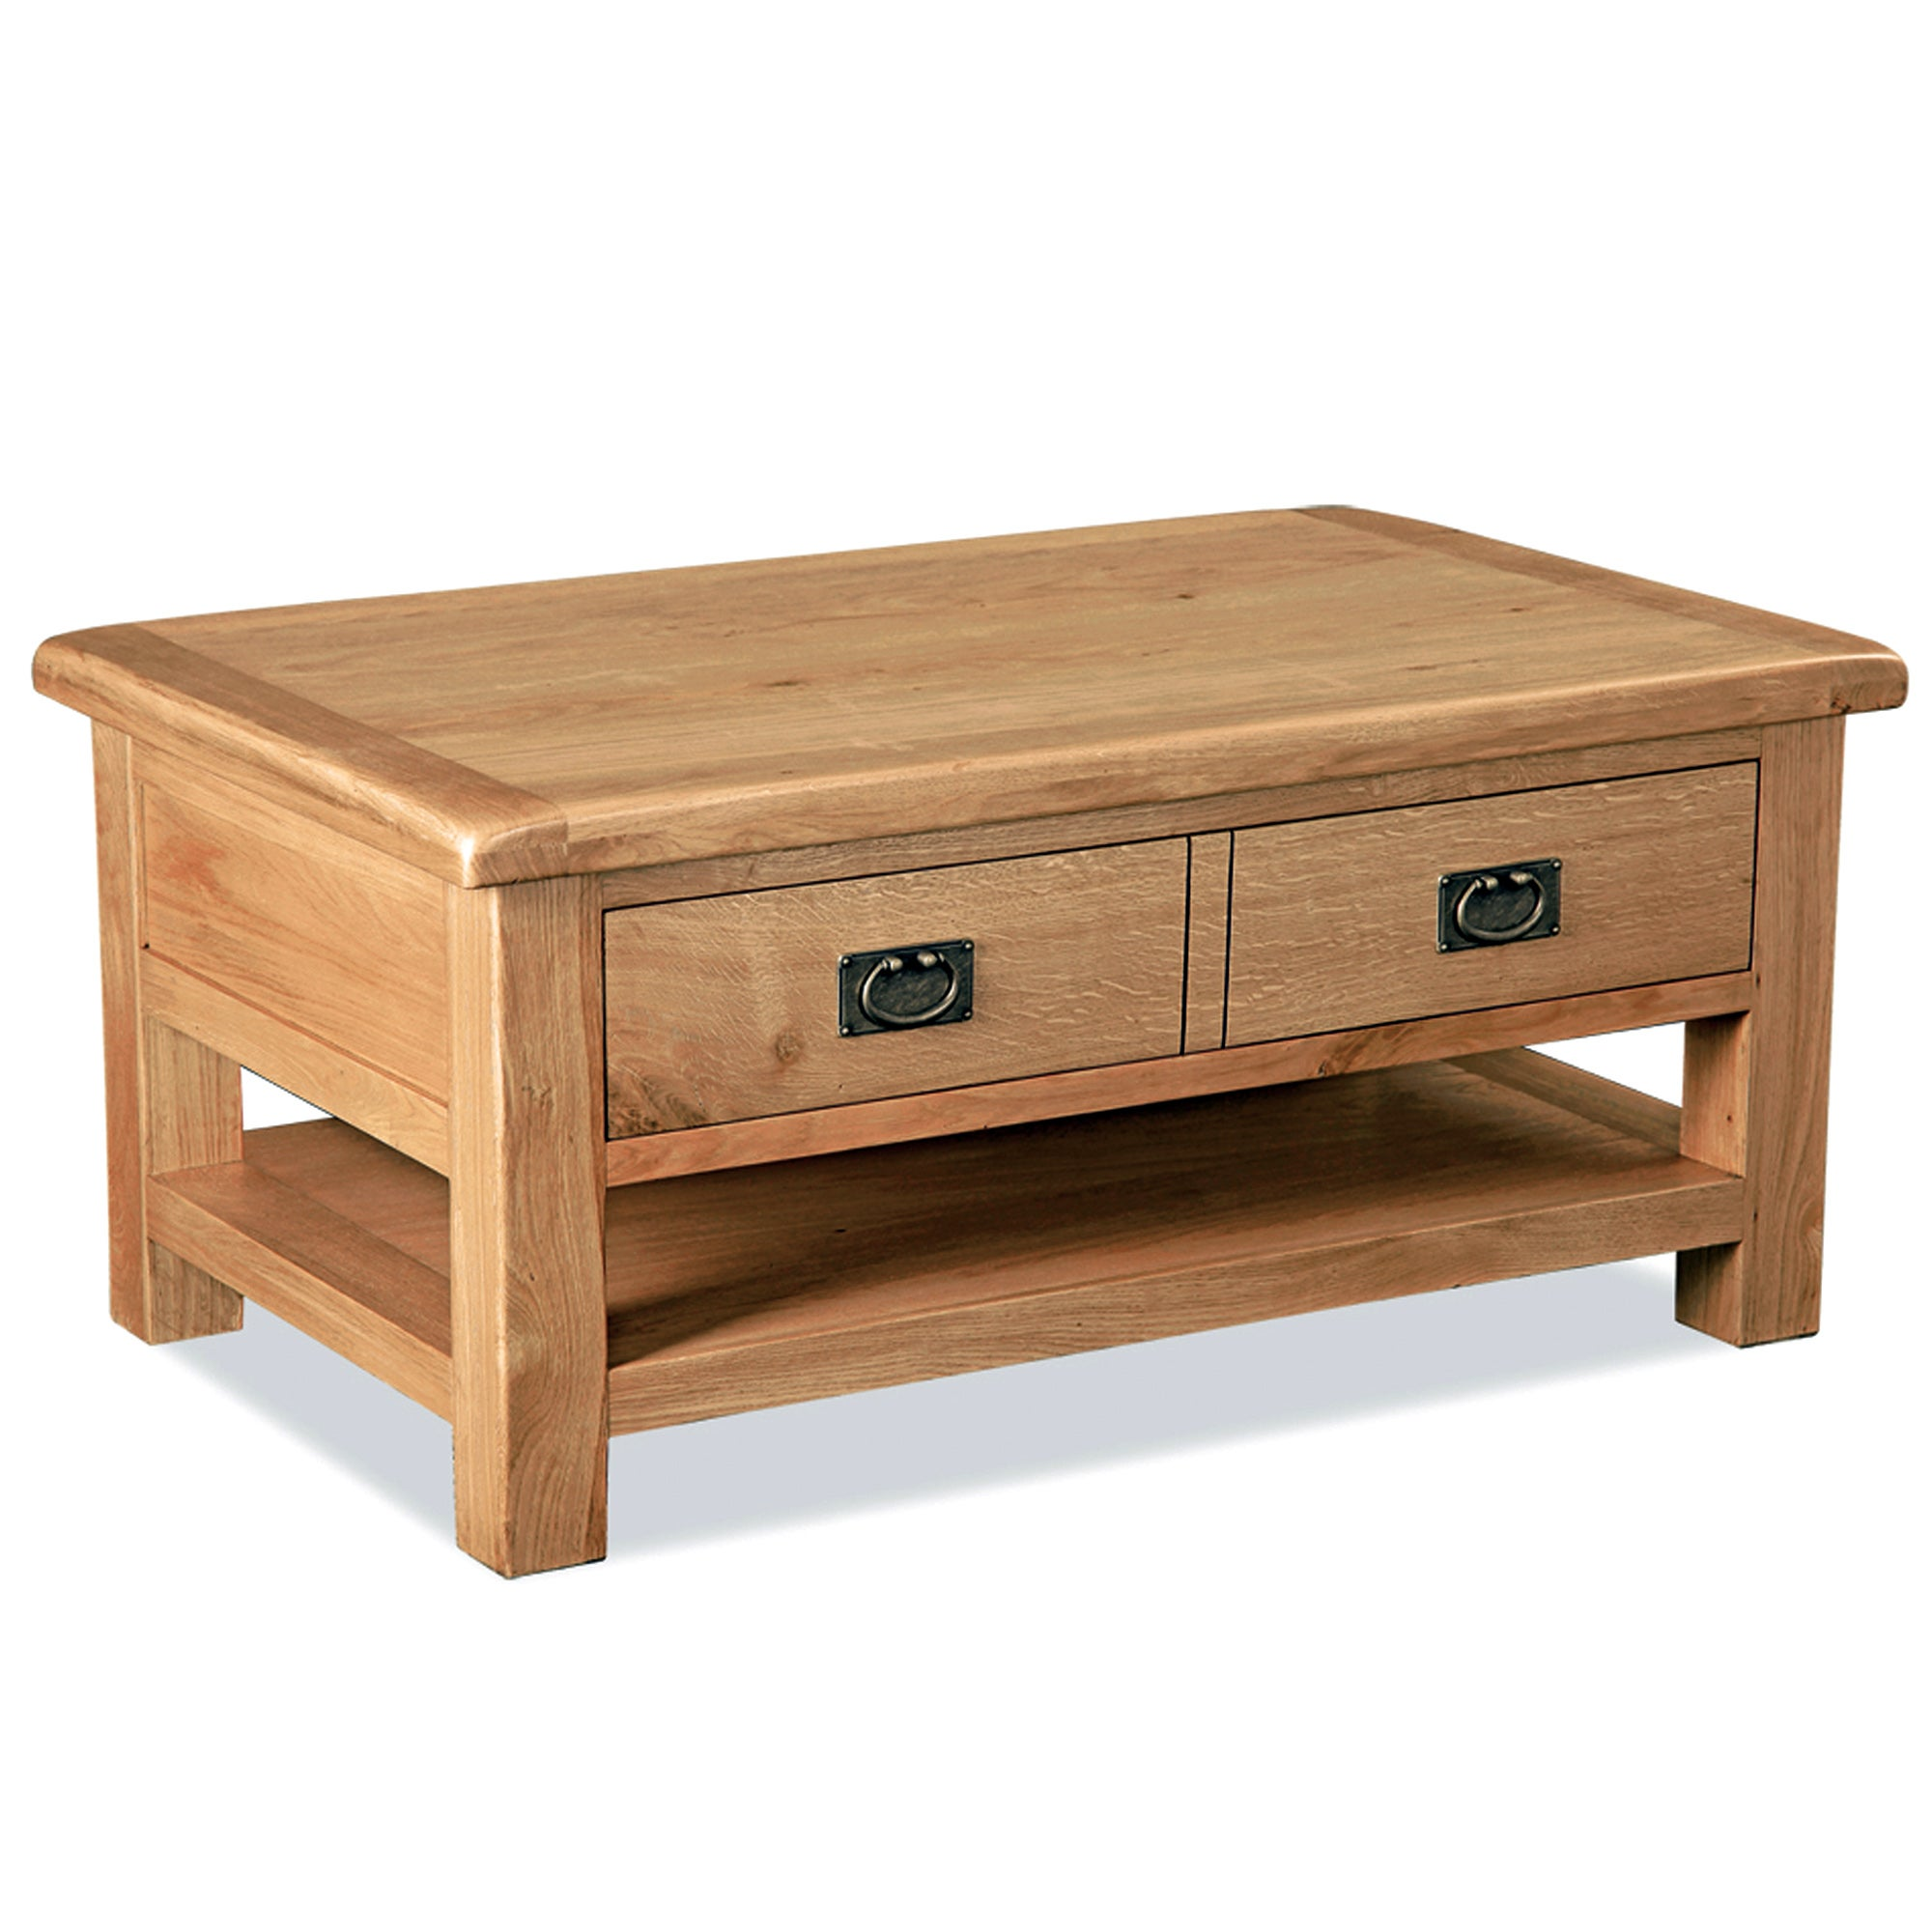 Top 30 Cheapest Oak Coffee Table UK Prices